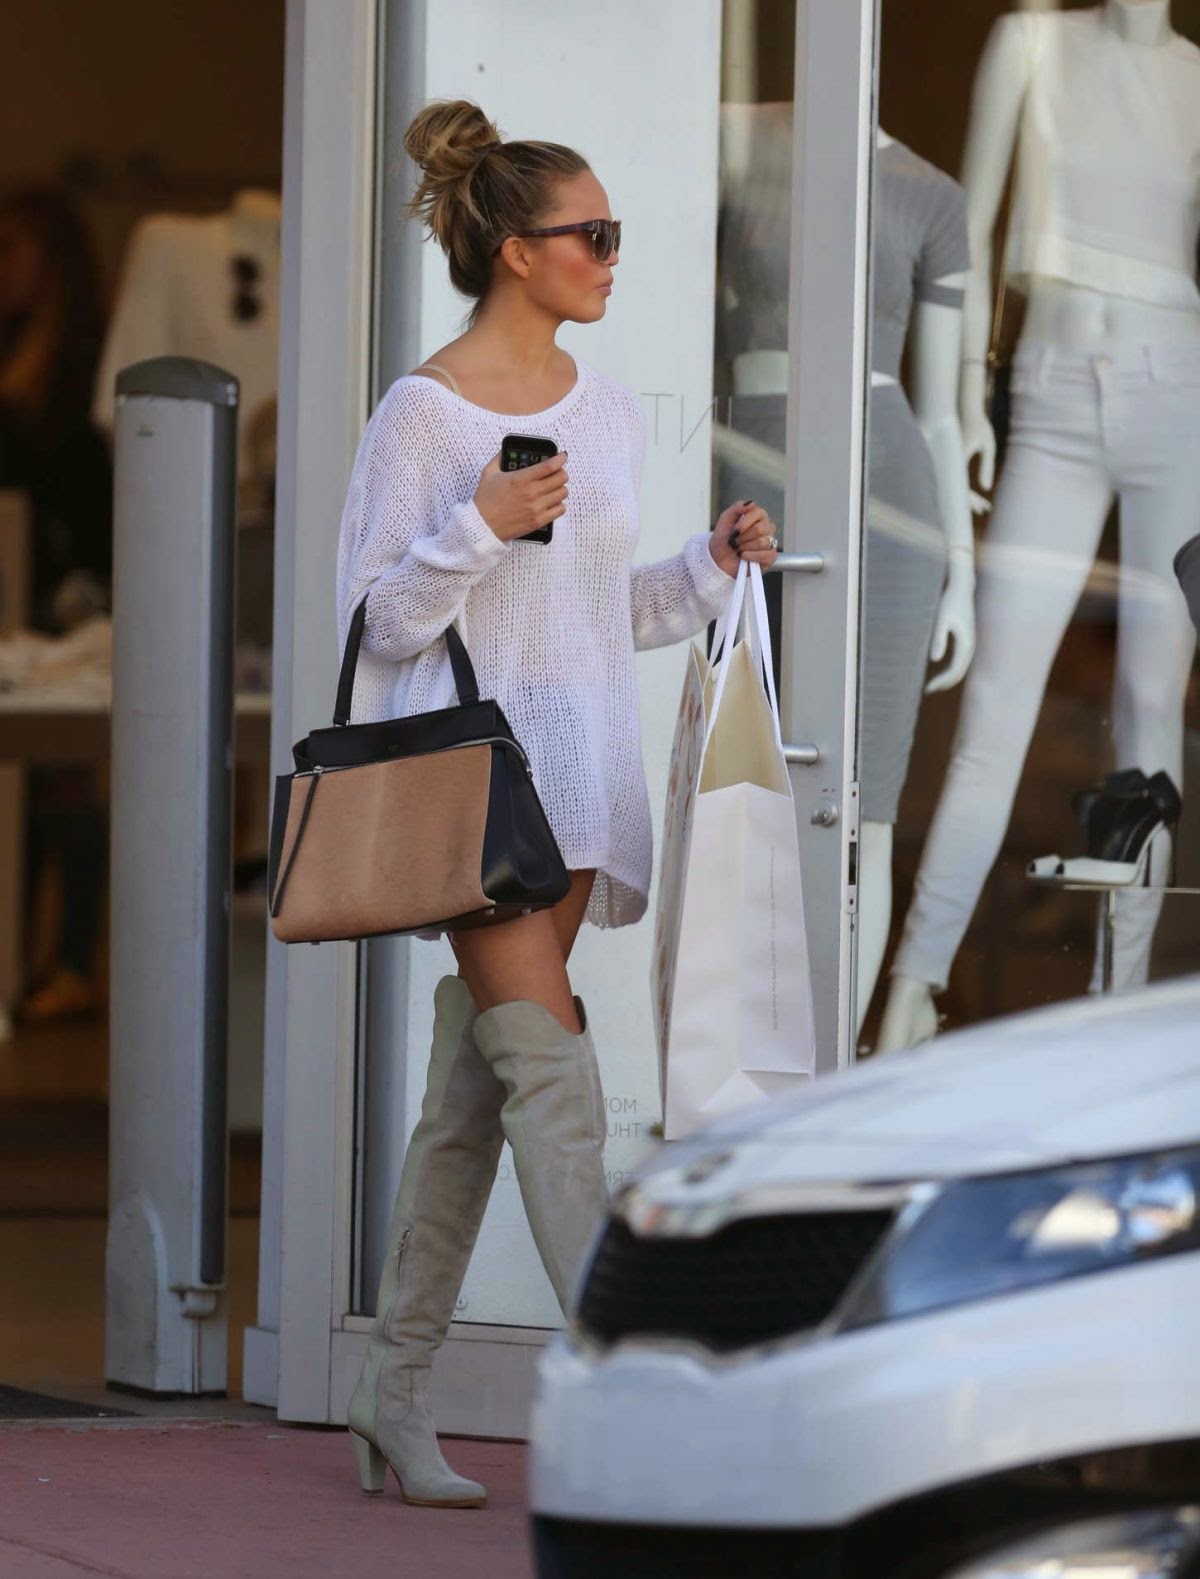 f565c37754012 February 23, 2015 - Chrissy Teigen shopping in Miami Florida wearing Chloé  Suede and Textured-leather Over-the-knee Boots which retail for $1,370